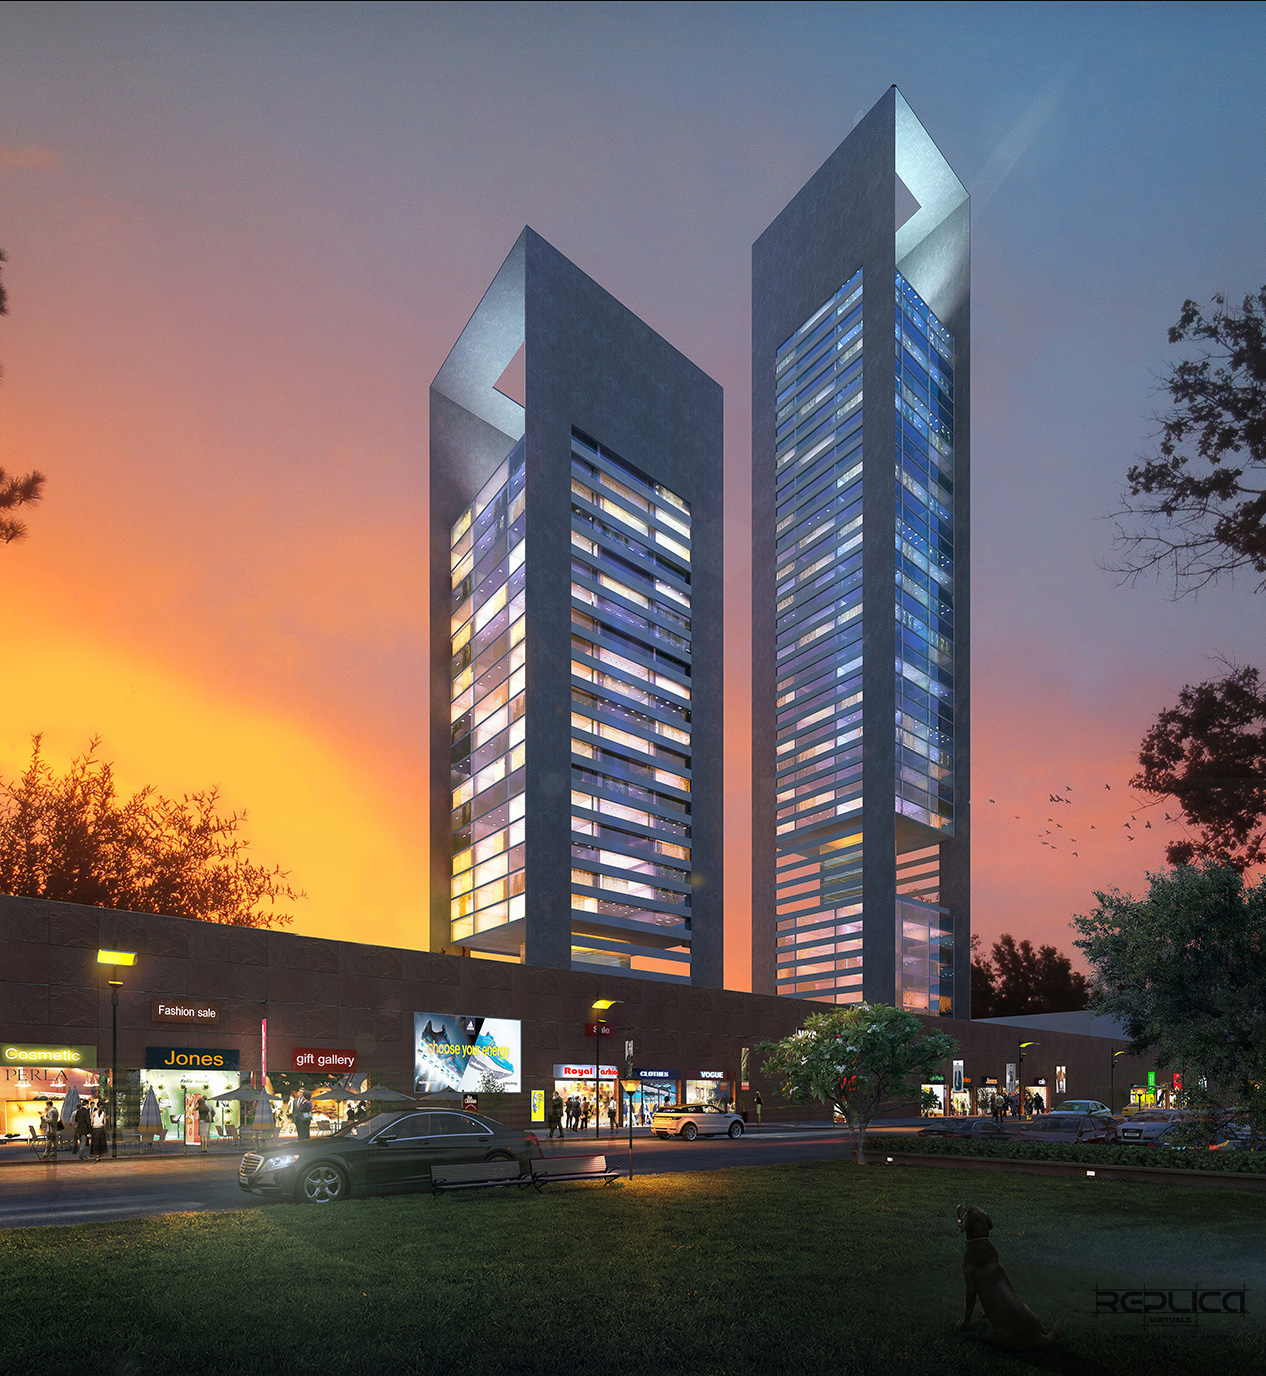 Replica virtuals pvt ltd 3d architectural visualization for Best architecture companies in india